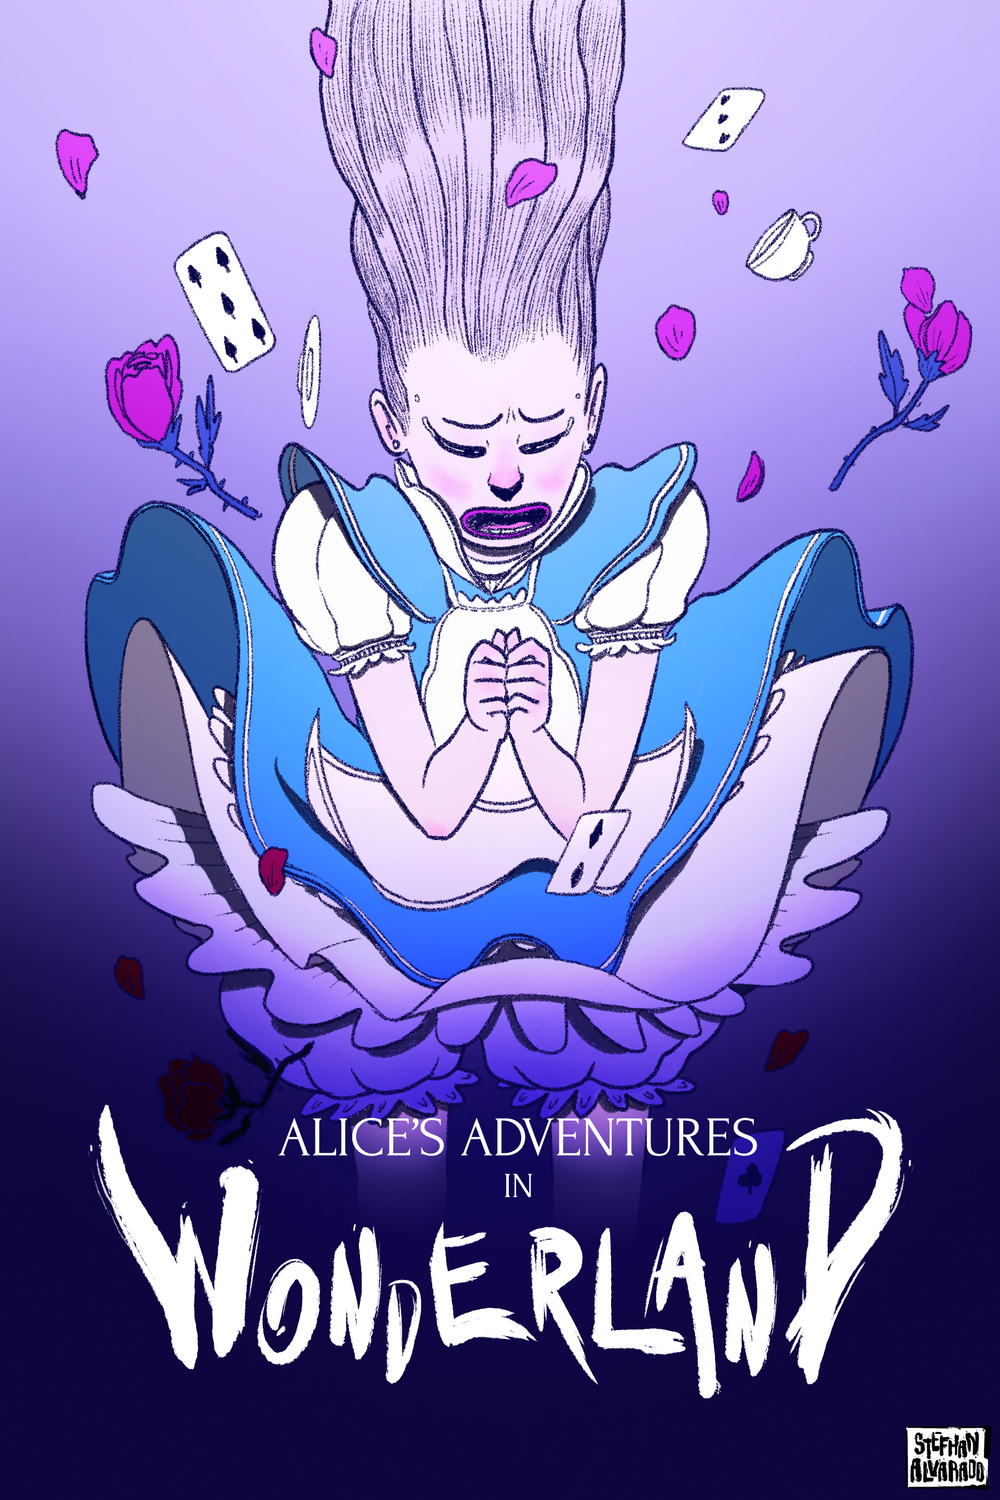 Alice's+Adventures+in+Wonderland.jpg